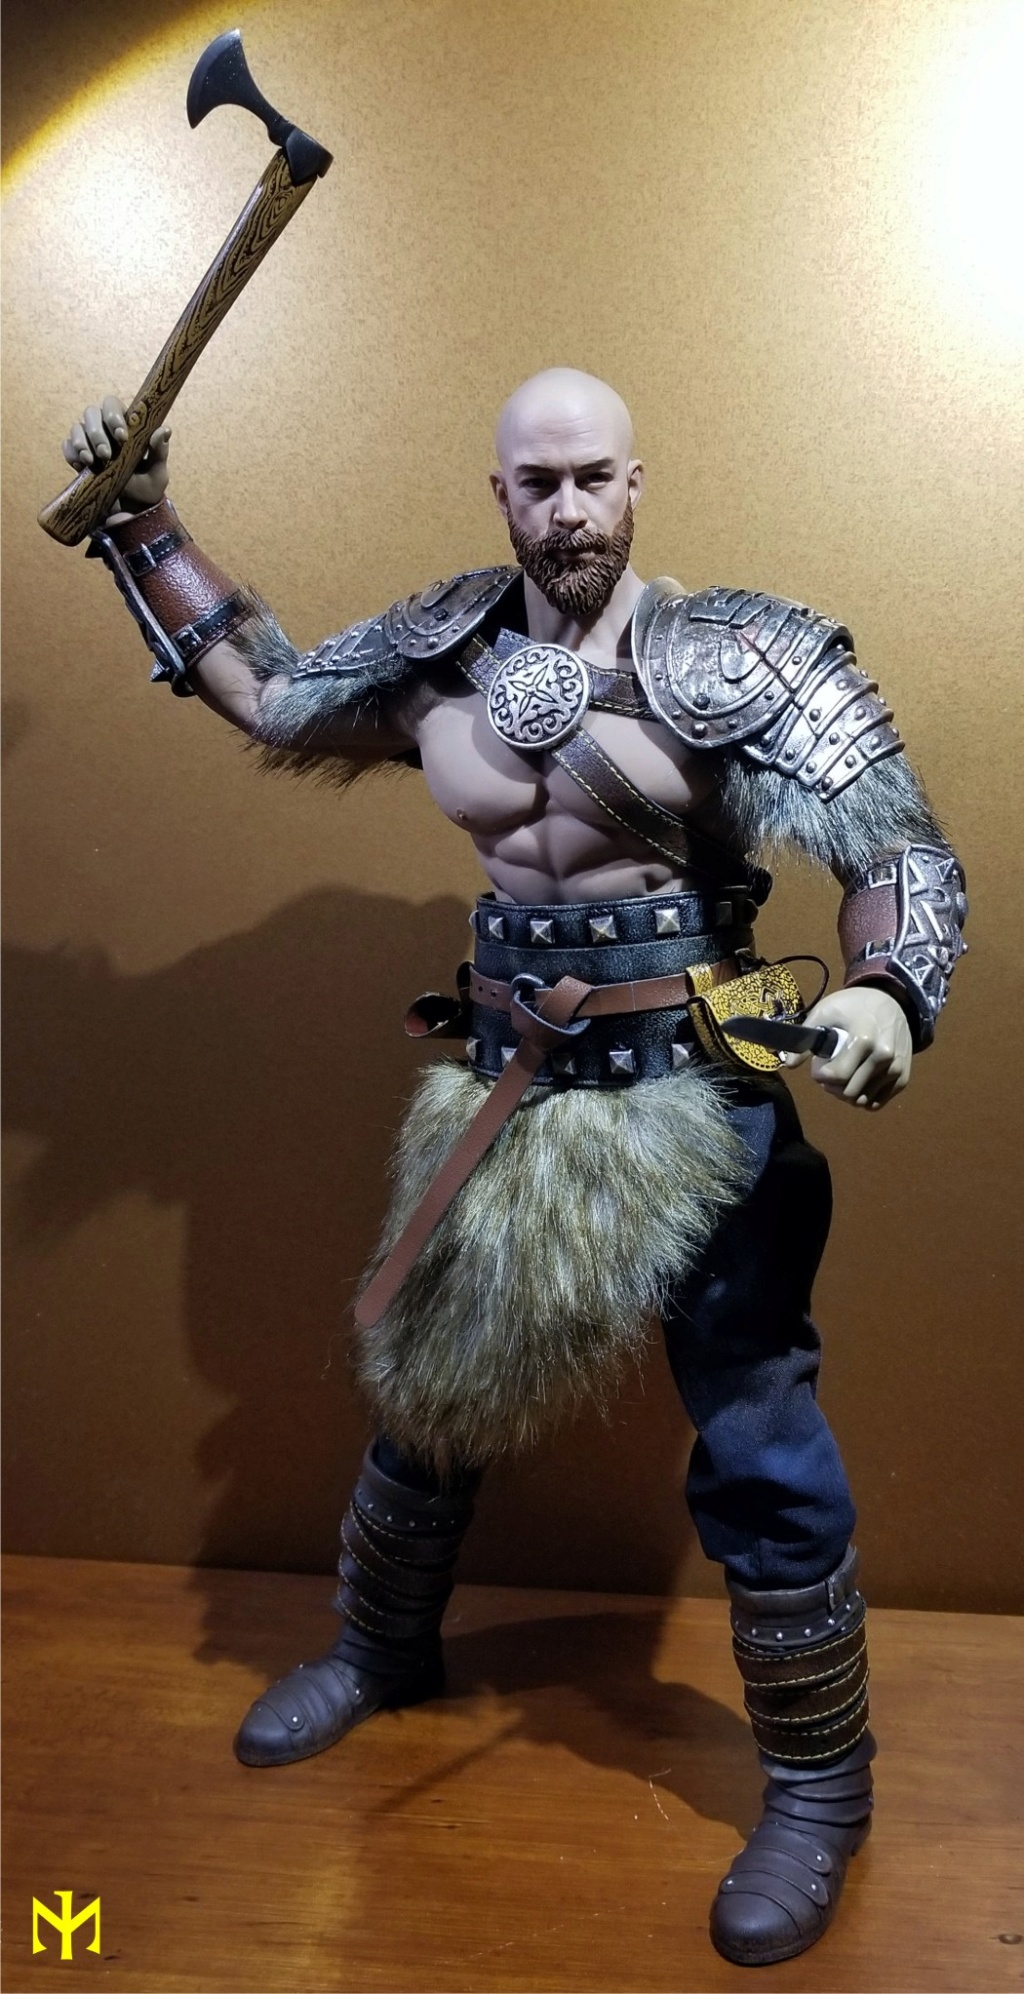 Conanesque: A Fantasy Warrior Kitbash (update 5: February 2020) Viking46